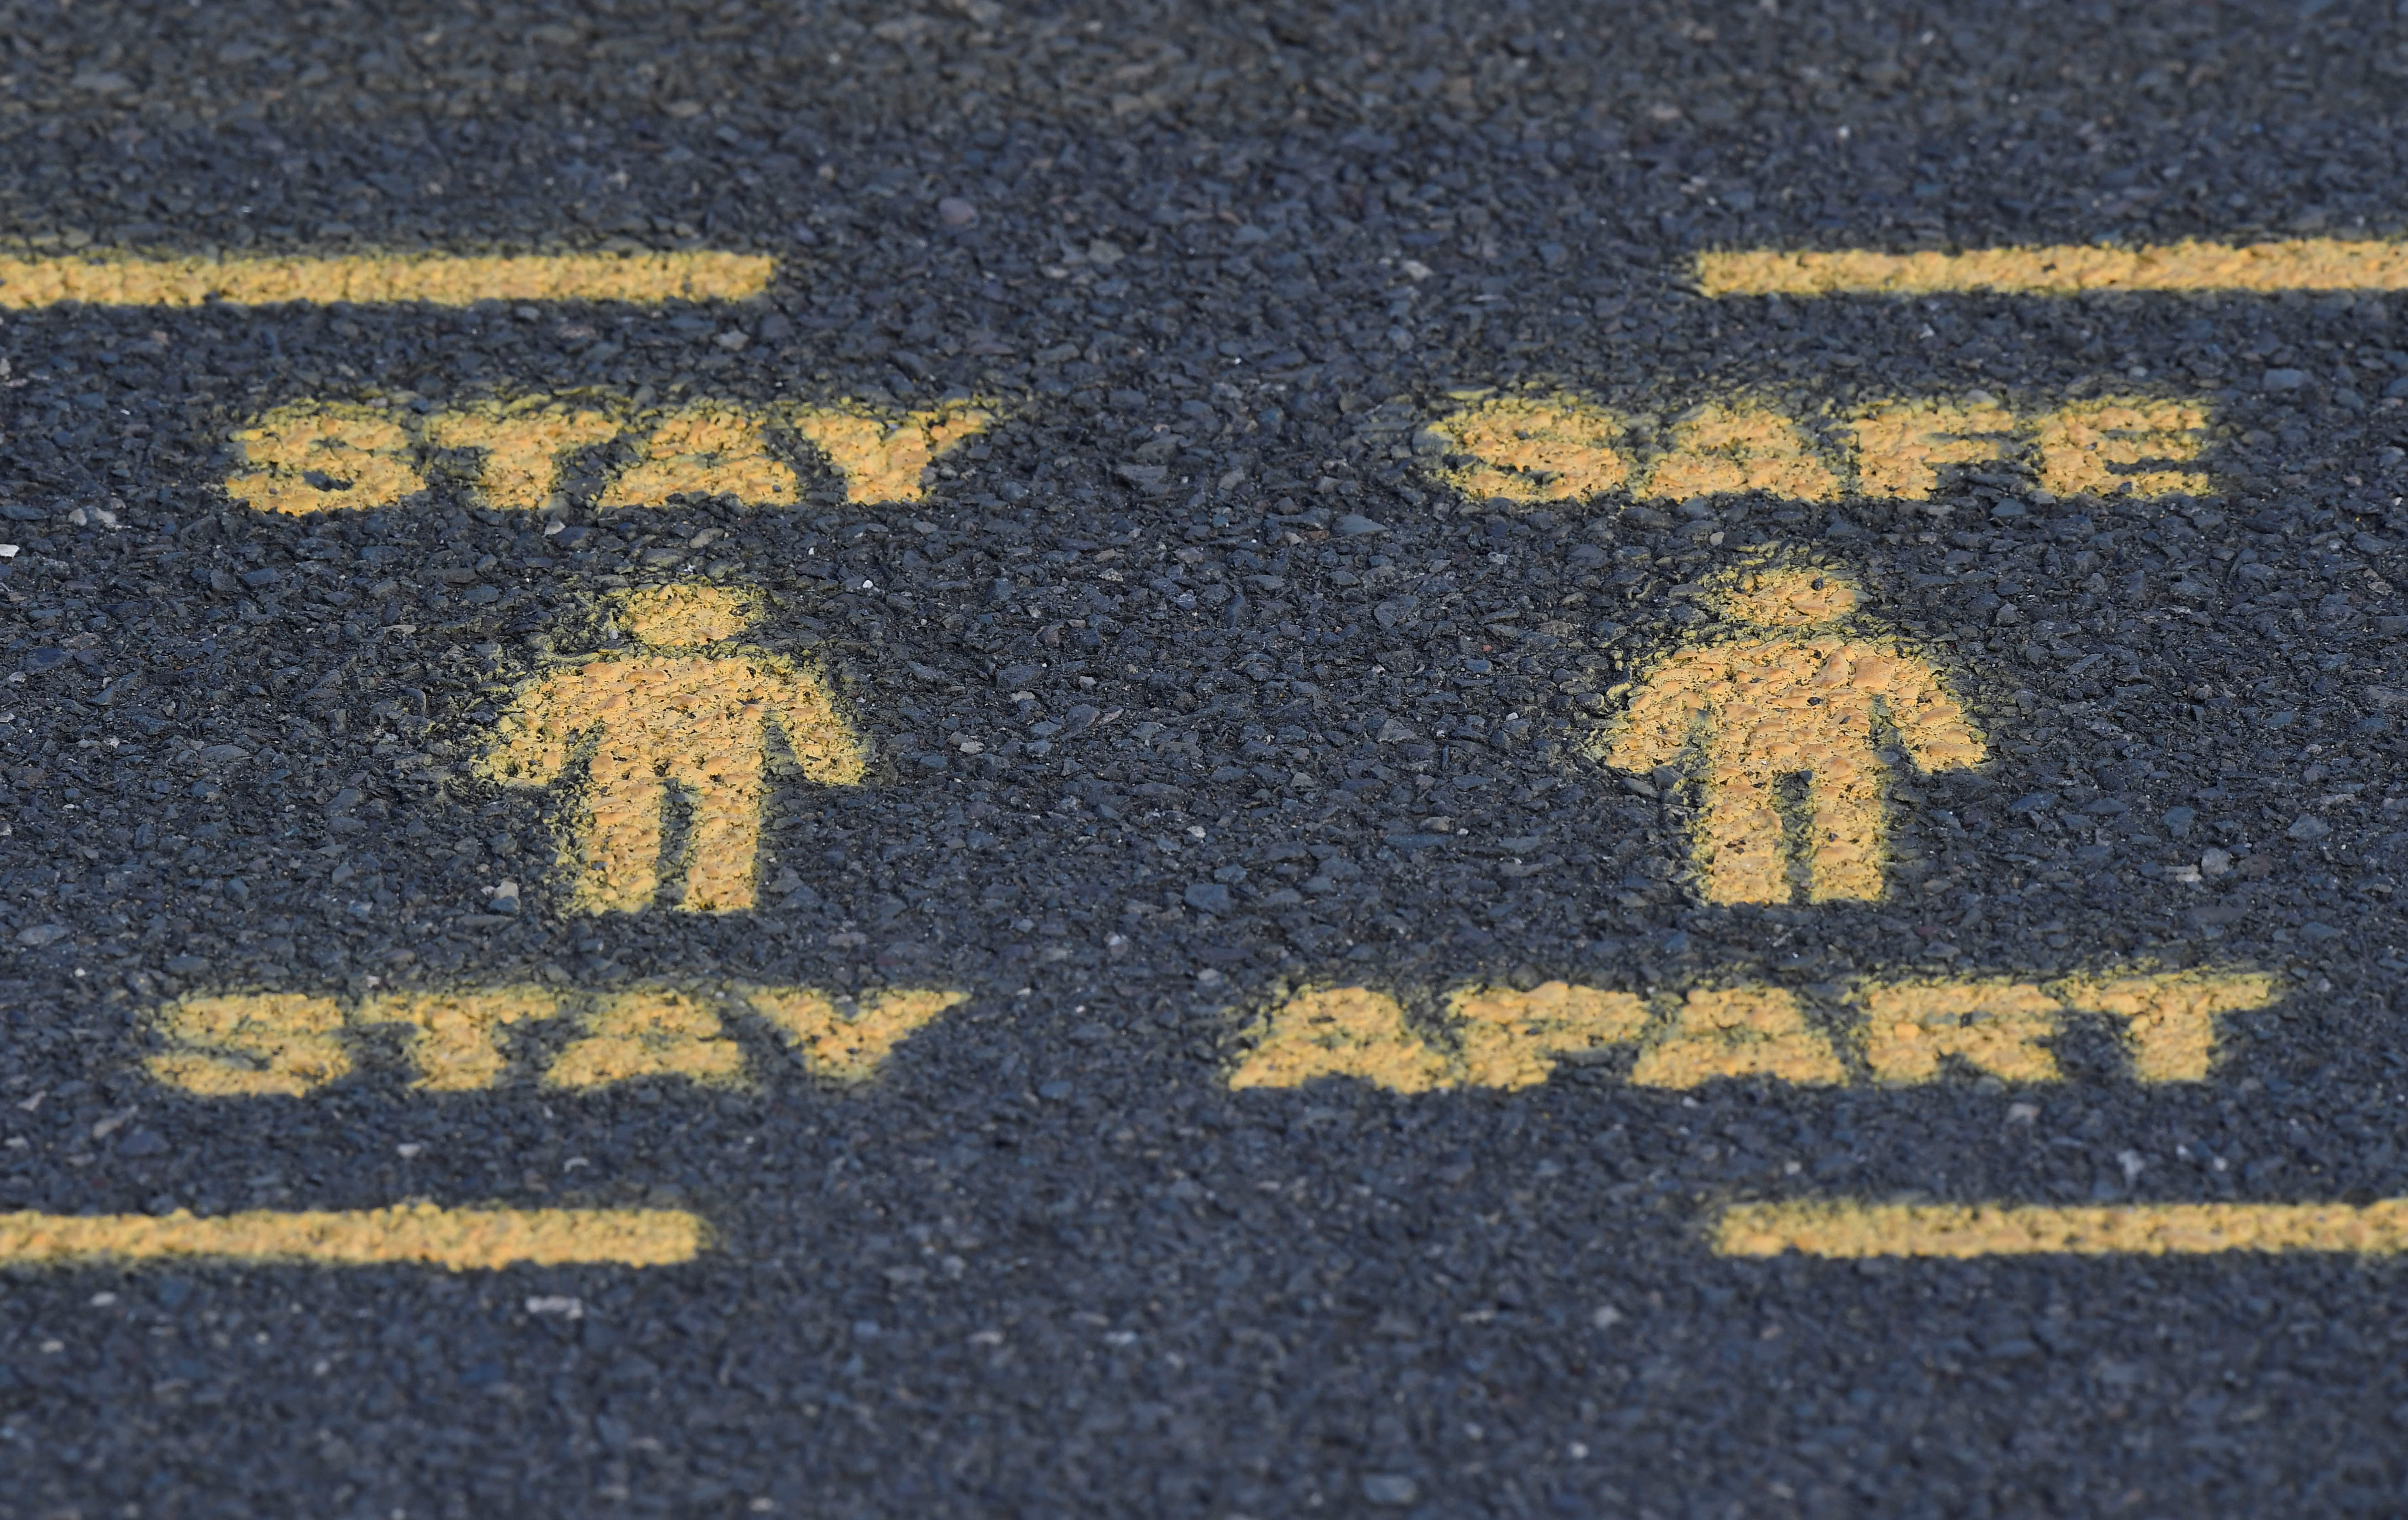 Public health signs are sprayed on sidewalks while reproduction.